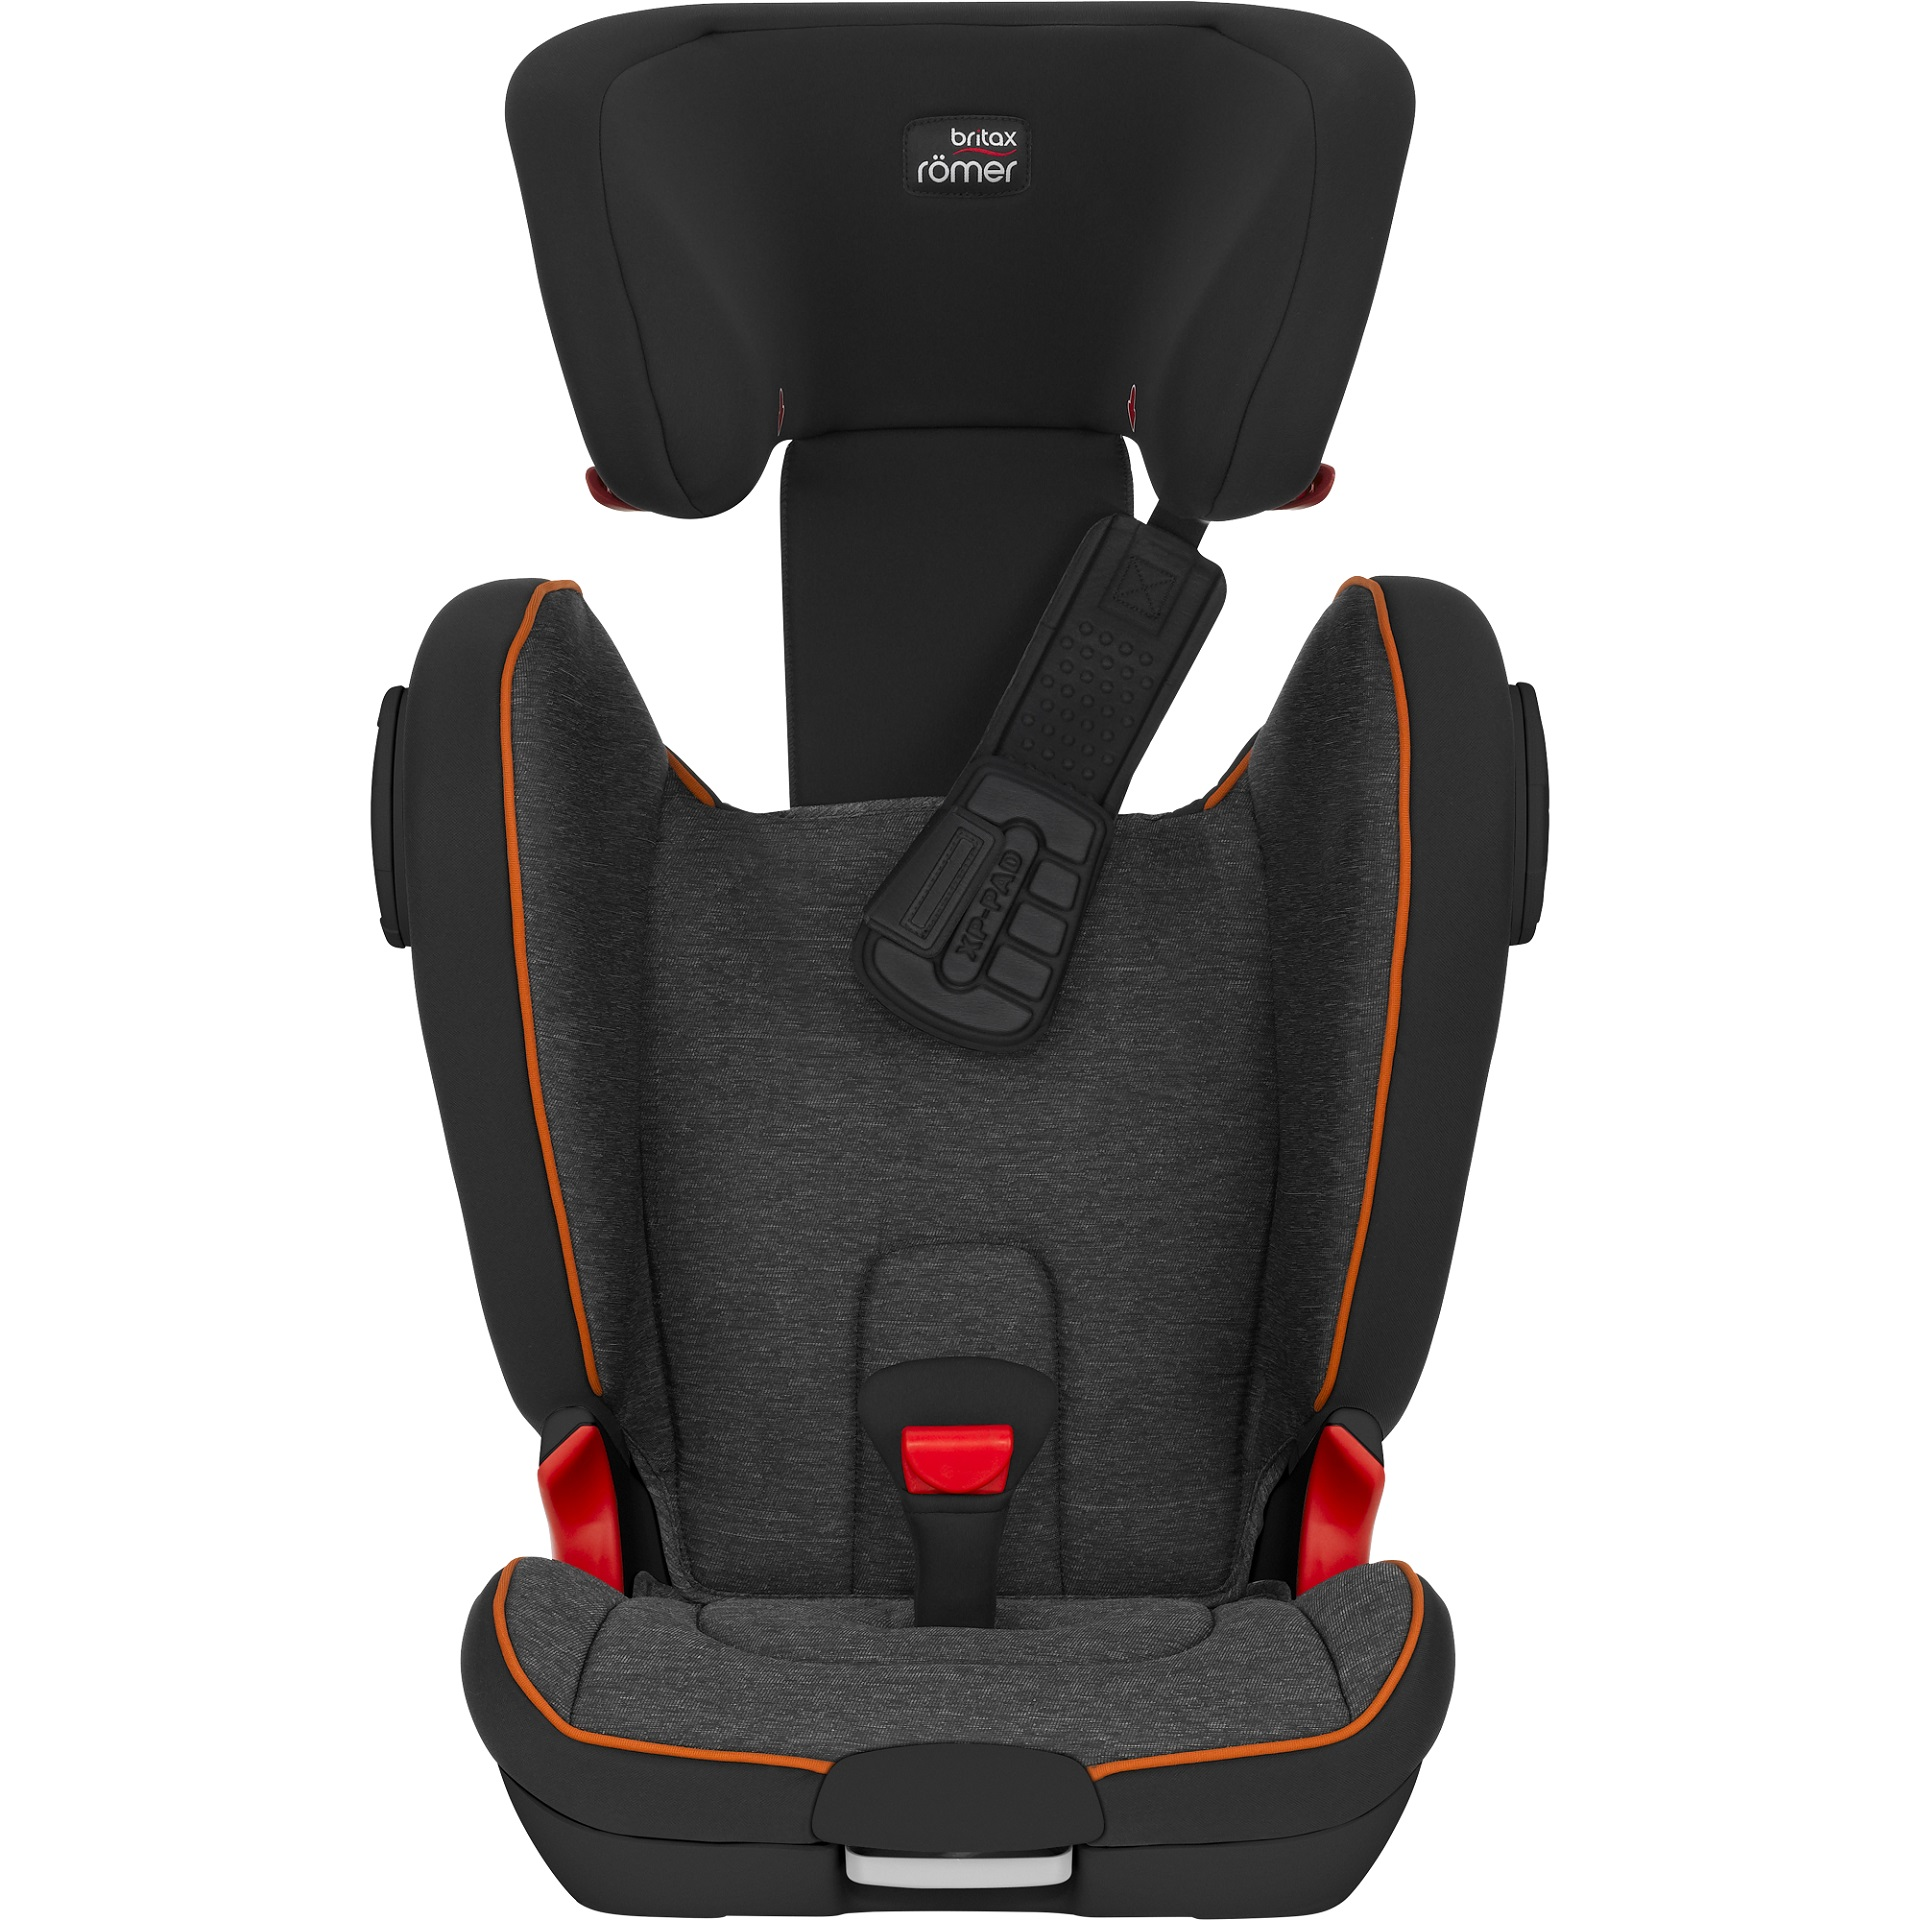 britax r mer child car seat kidfix ii xp sict black series 2019 storm grey buy at kidsroom. Black Bedroom Furniture Sets. Home Design Ideas